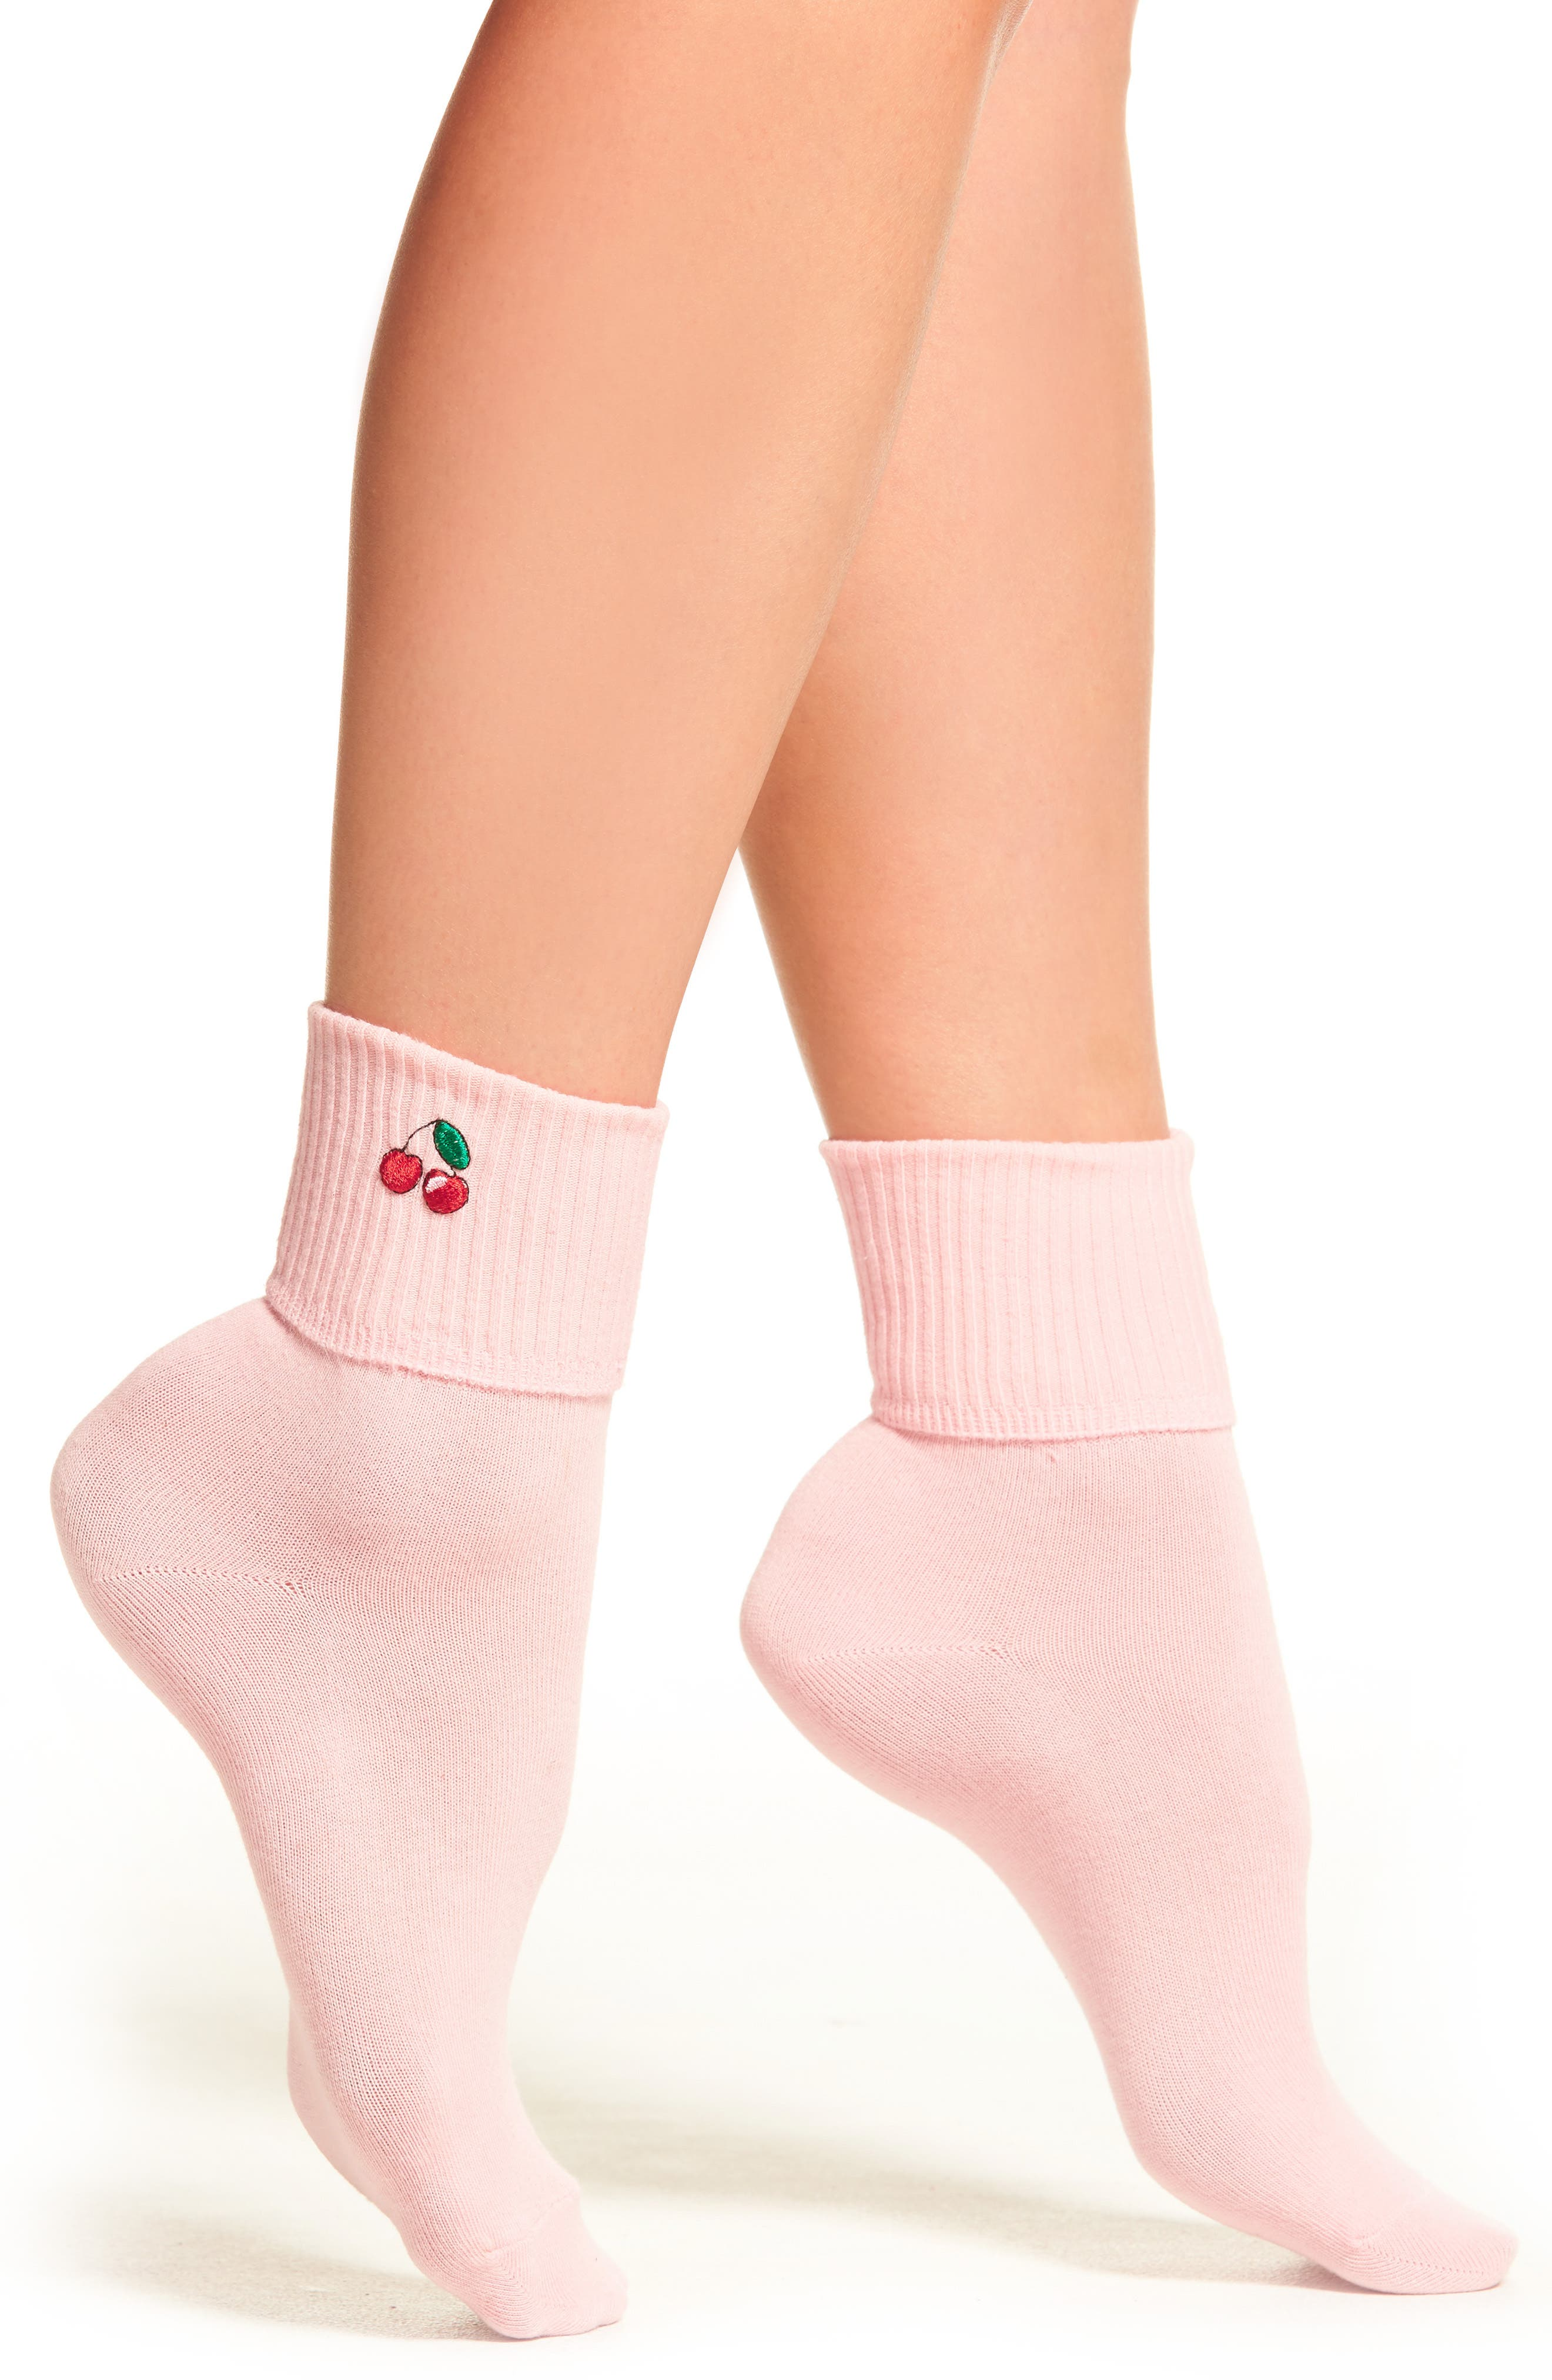 Alternate Image 1 Selected - Yeah Bunny Cherry Socks